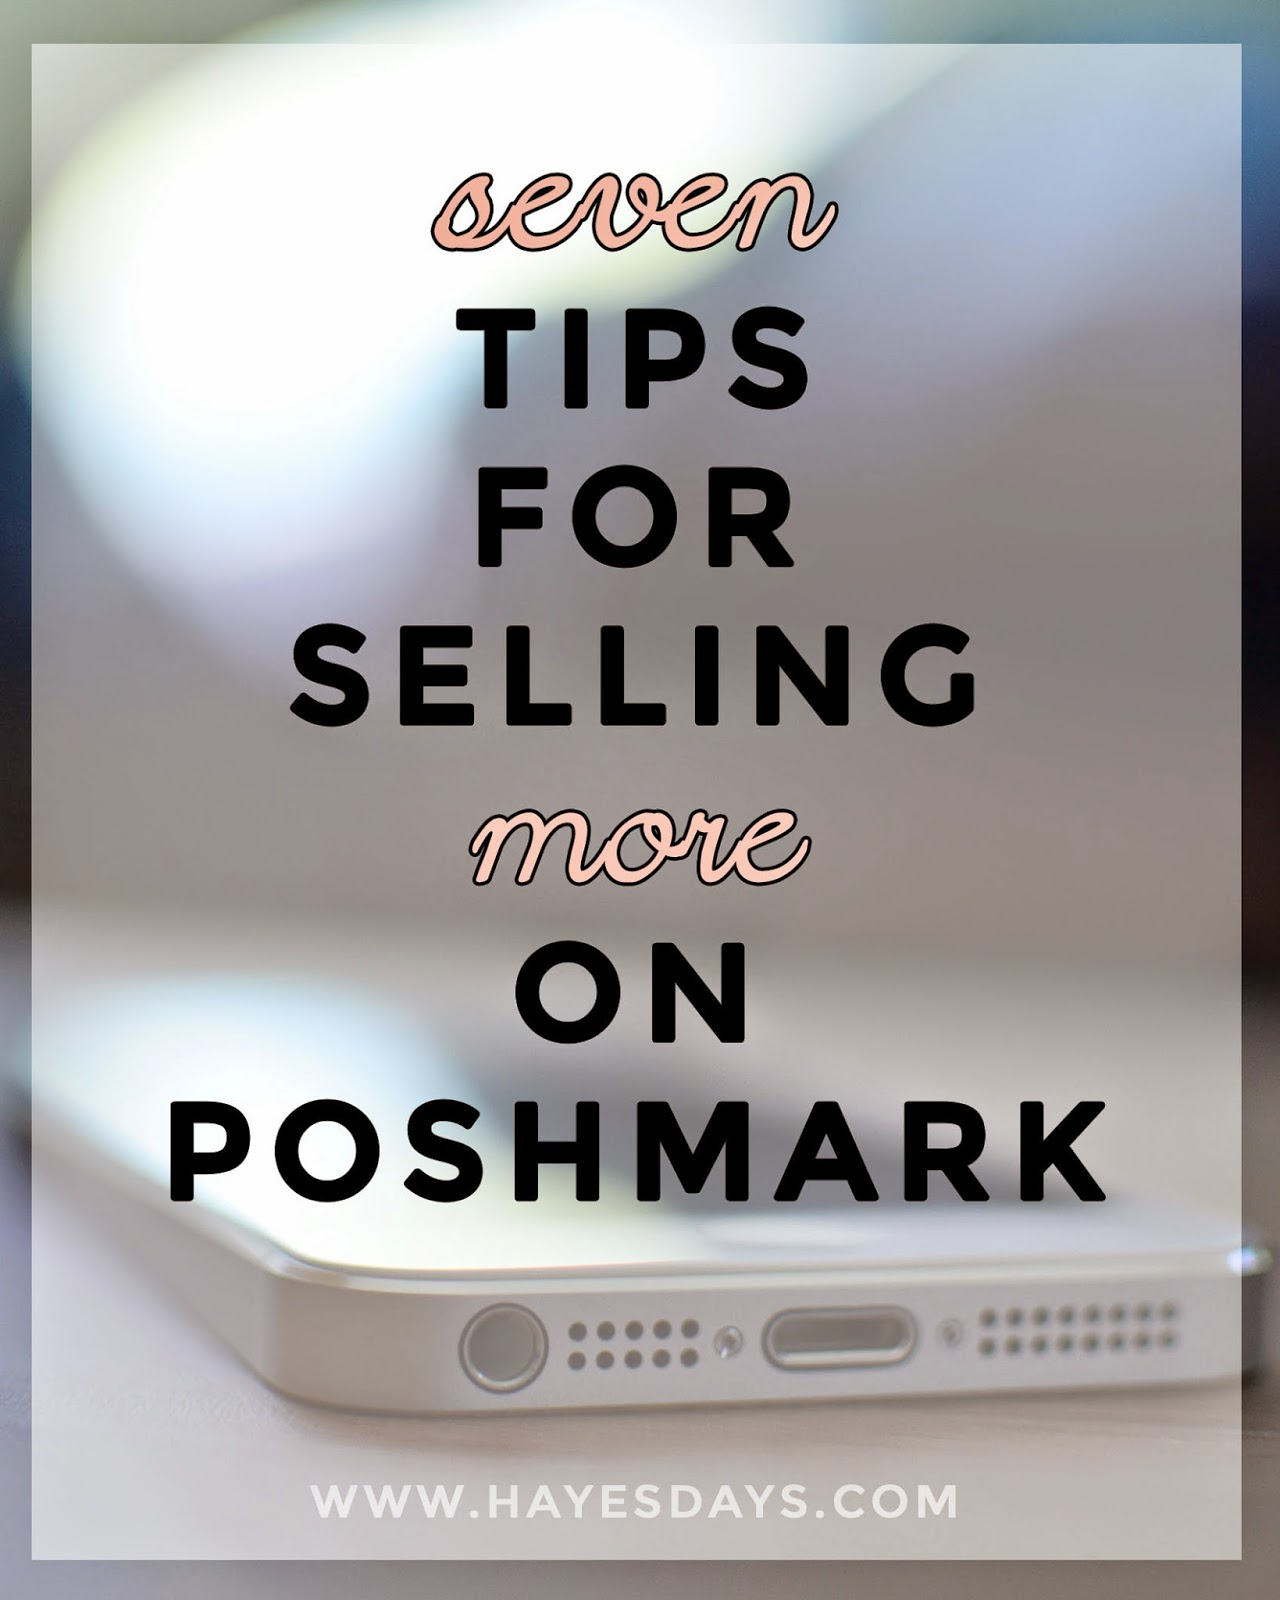 Style Day: Seven tips for selling More on poshmark